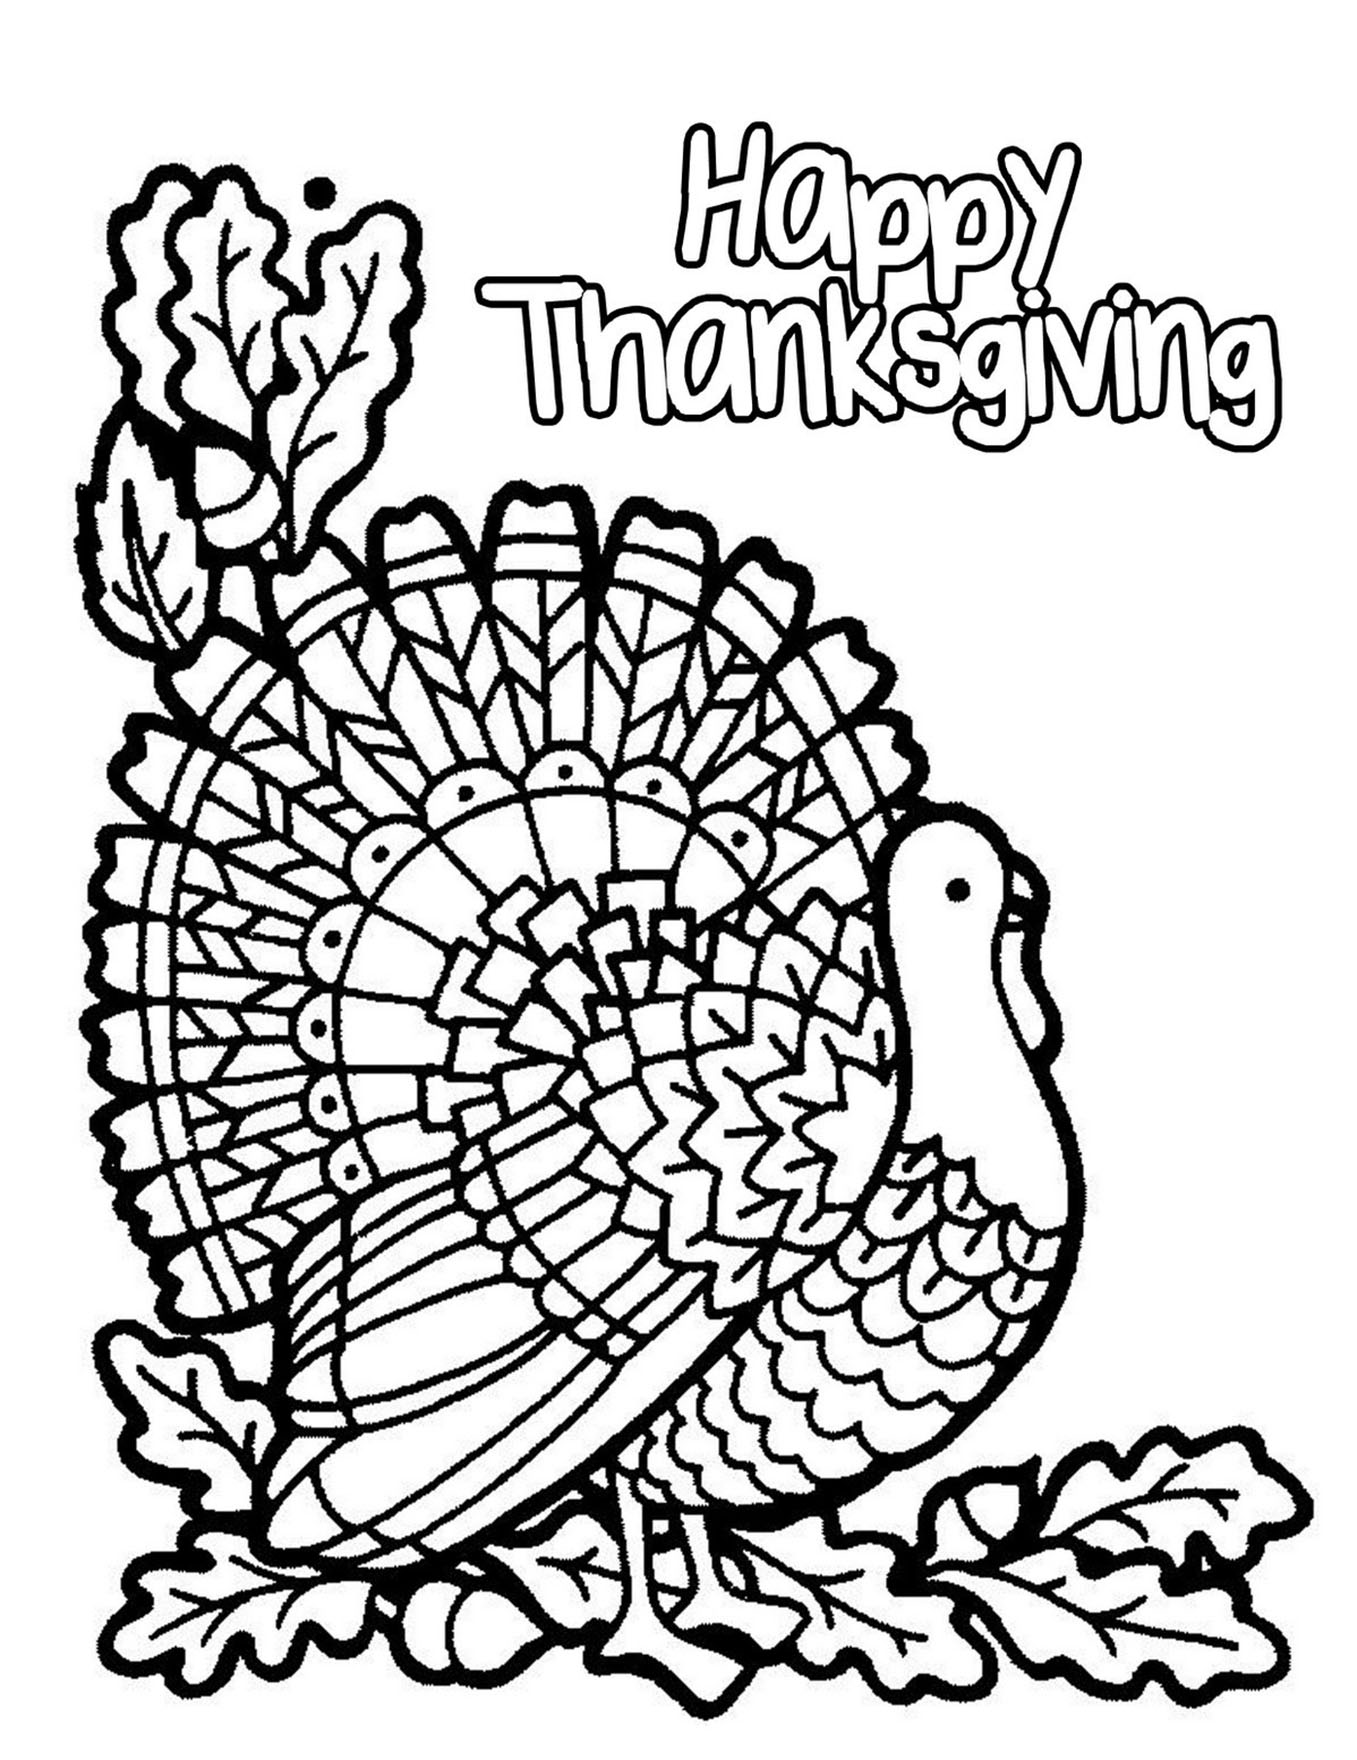 Disegni da colorare per adulti : Thanksgiving - 17